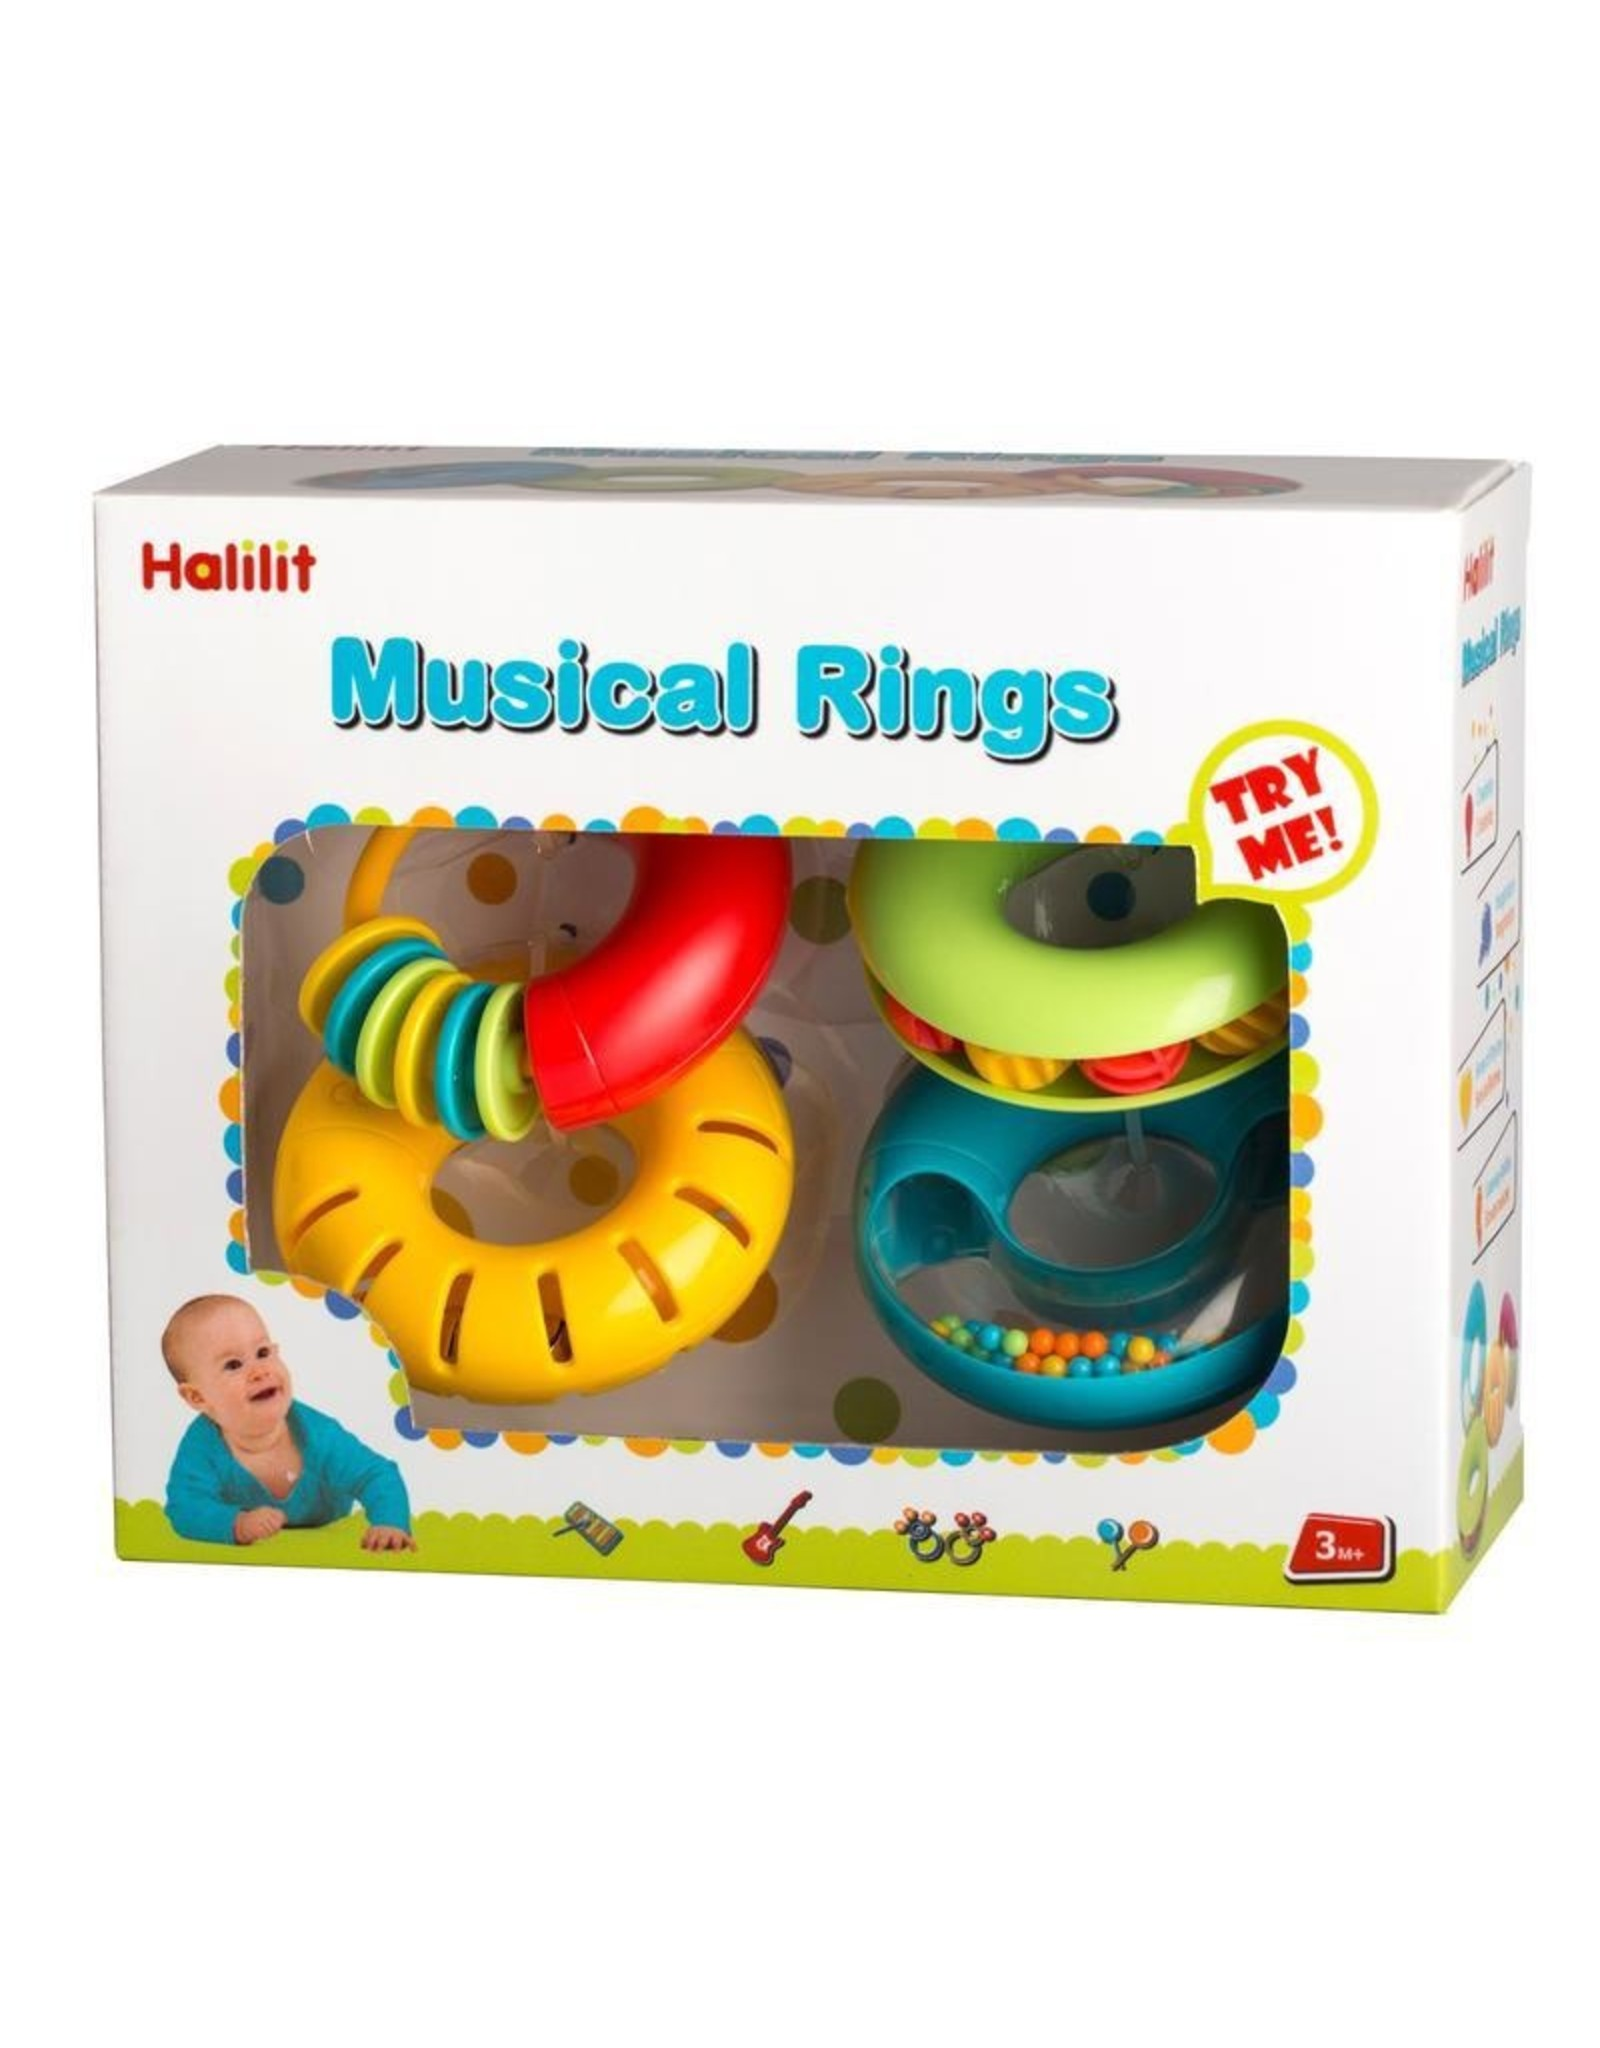 Halilit MUSICAL RINGS BY HALILIT